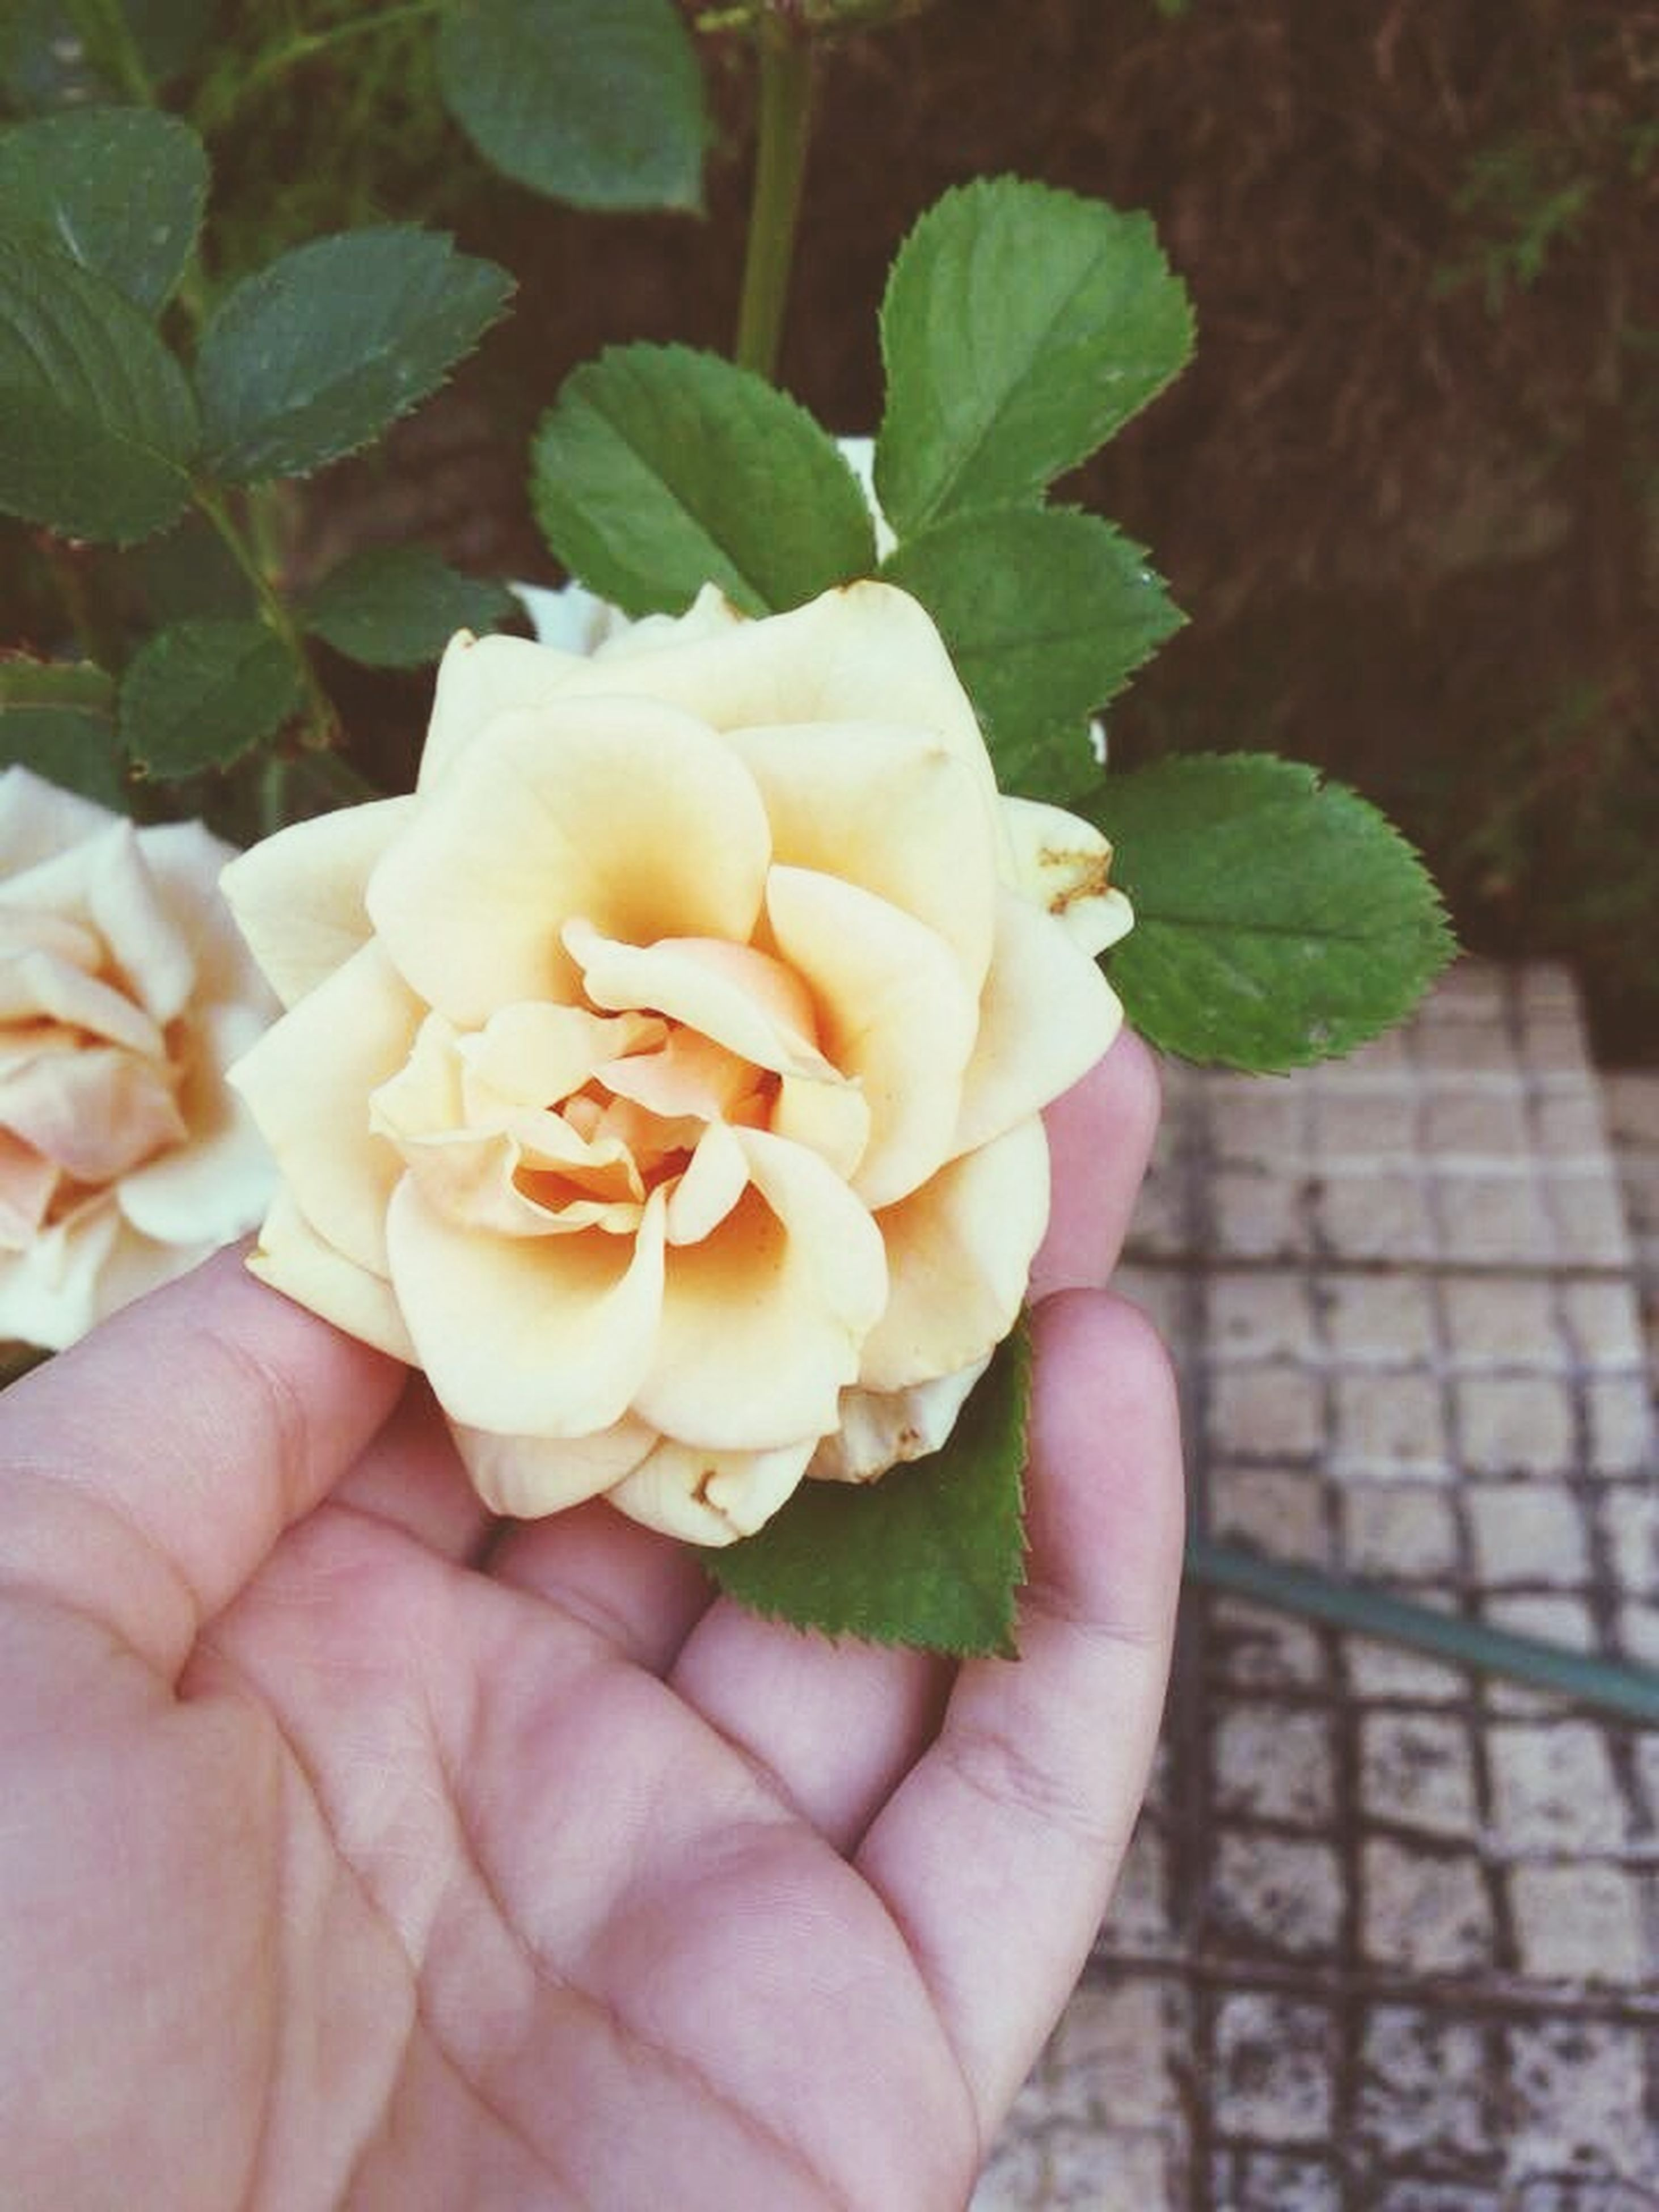 person, freshness, flower, holding, close-up, rose - flower, part of, focus on foreground, fragility, petal, flower head, cropped, human finger, leaf, unrecognizable person, single flower, rose